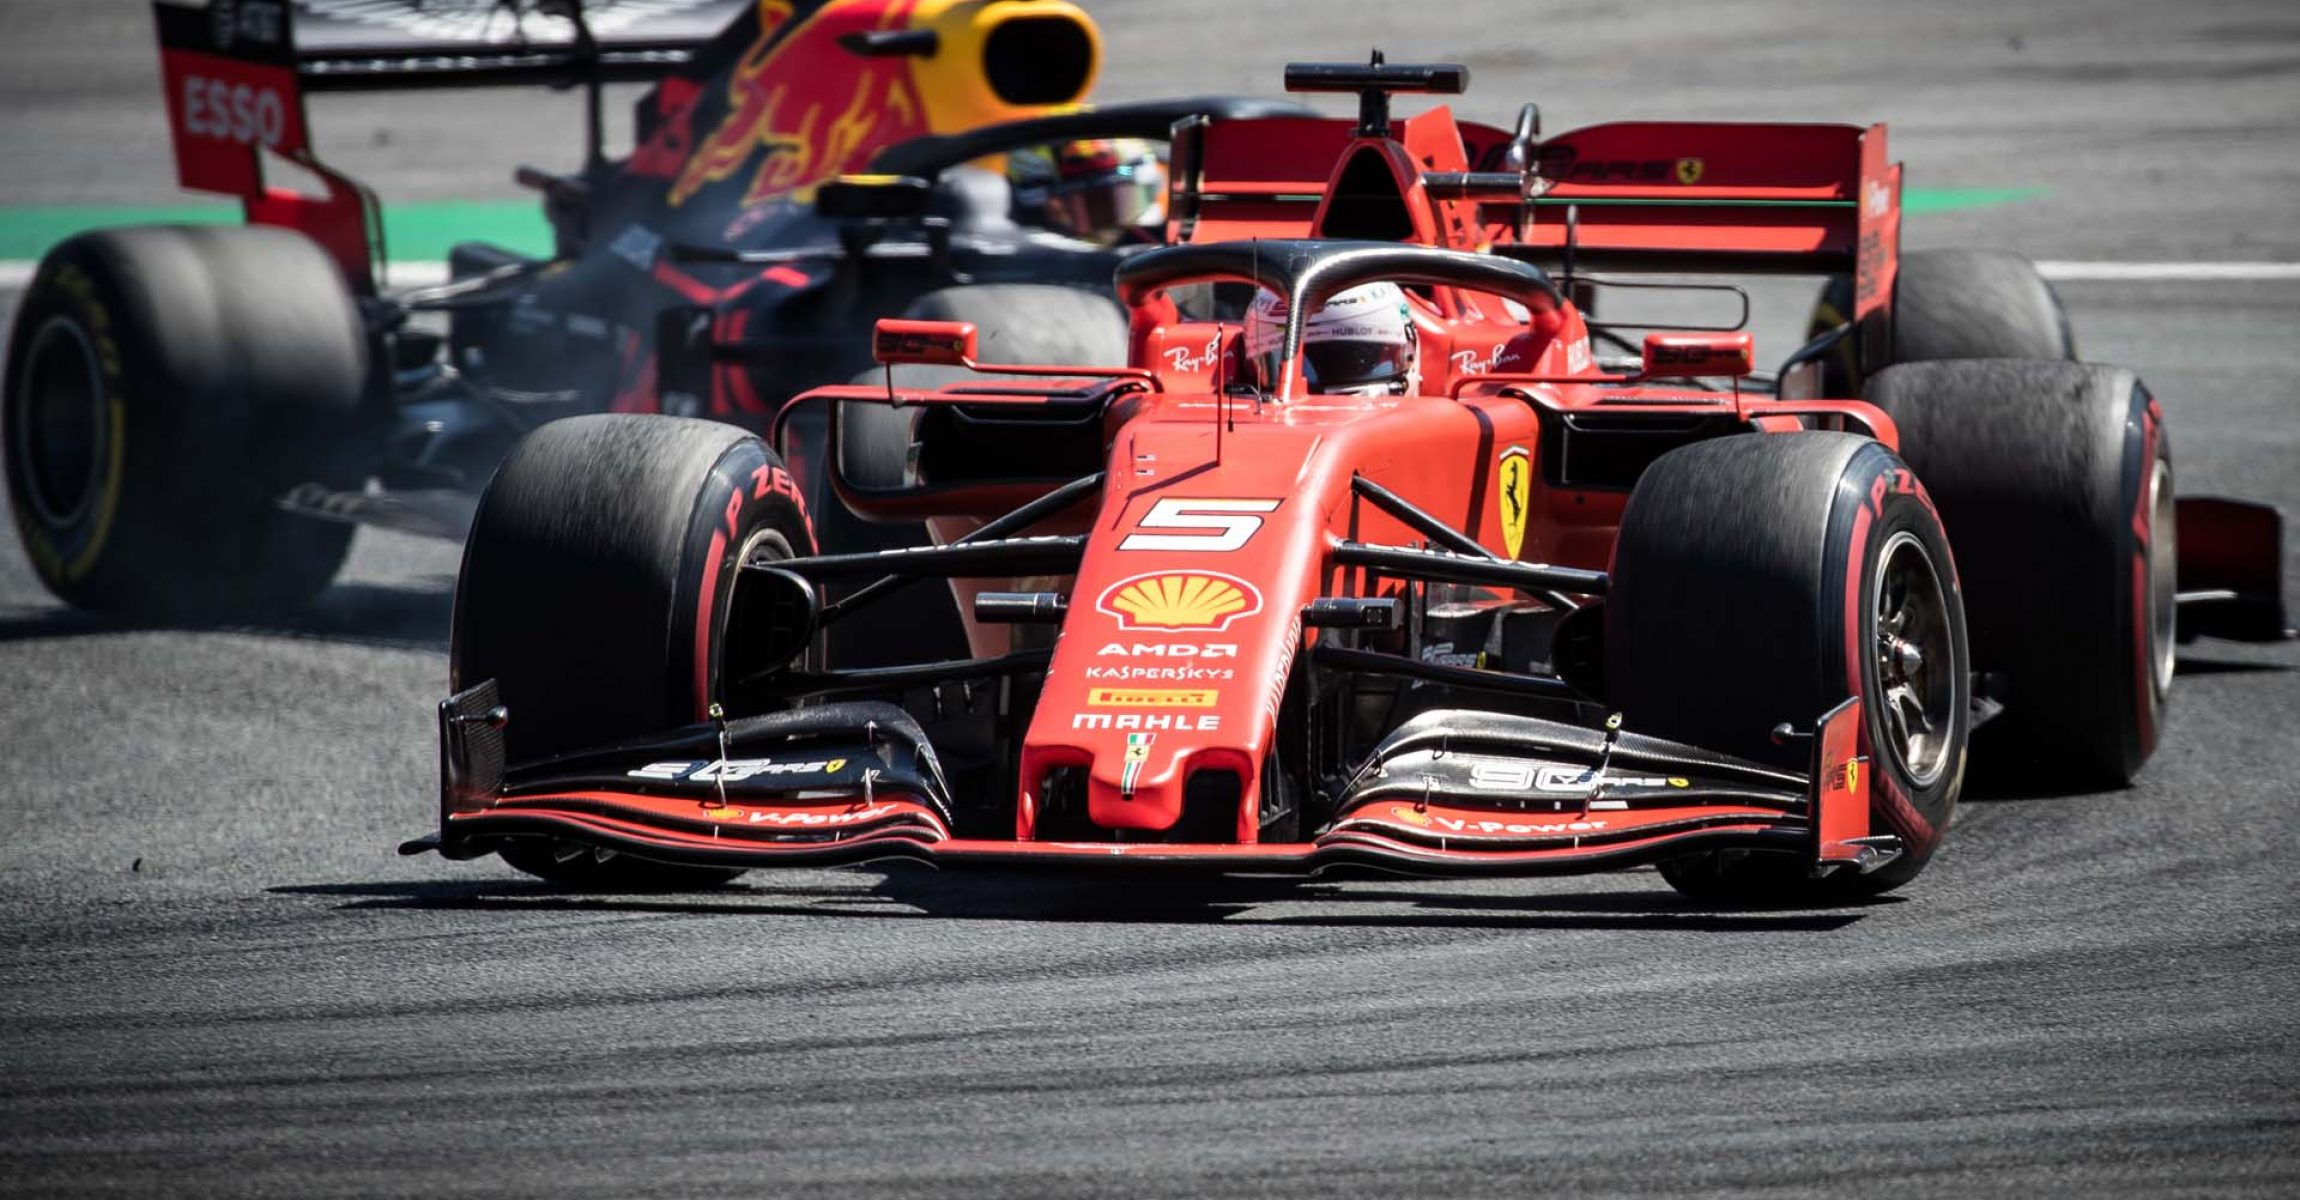 SPIELBERG,AUSTRIA,30.JUN.19 - MOTORSPORTS, FORMULA 1 - Grand Prix of Austria, Red Bull Ring. Image shows Sebastian Vettel (GER/ Ferrari) and Max Verstappen (NED/ Red Bull Racing). Photo: GEPA pictures/ Matic Klansek - For editorial use only. Image is free of charge.